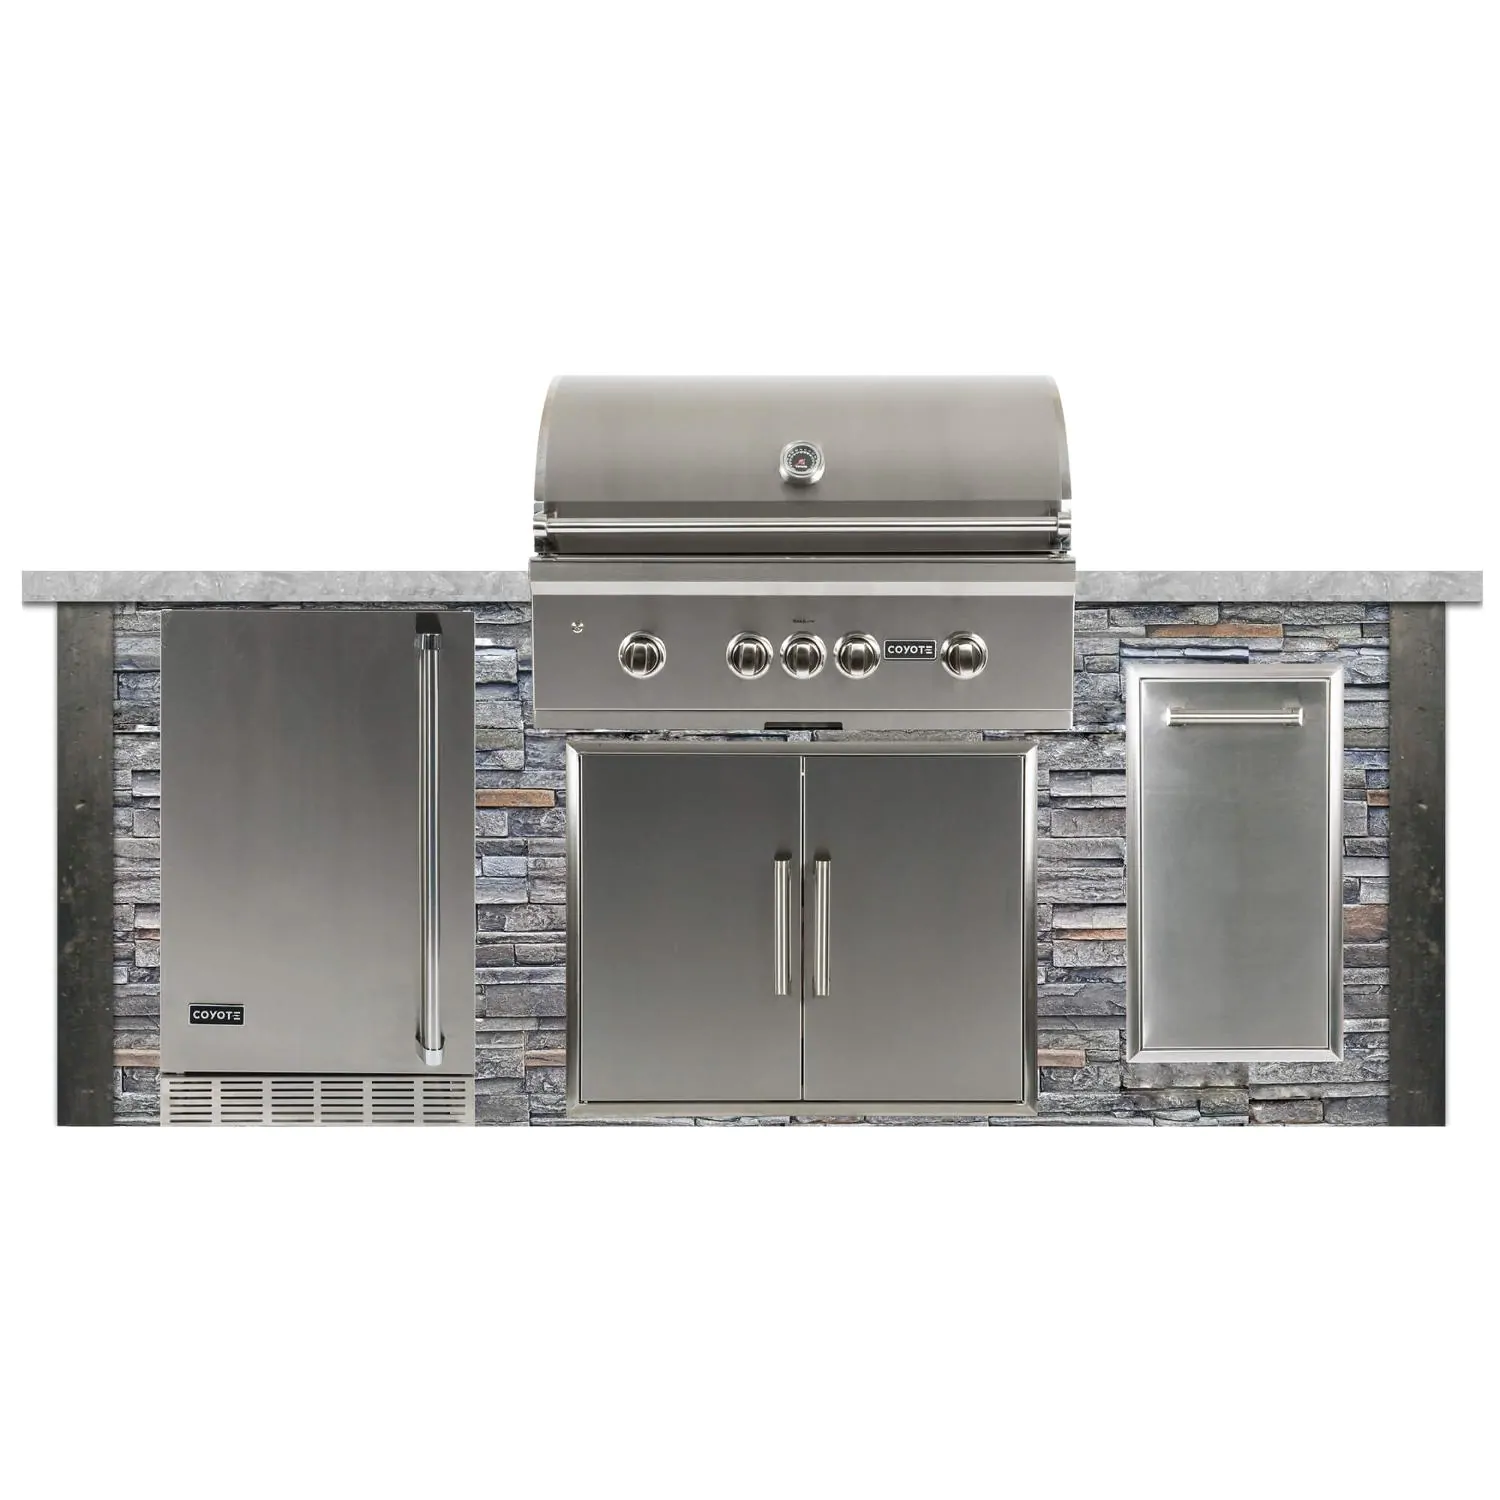 Coyote Ready-To-Assemble 8 Ft Outdoor Kitchen Island With 36-Inch S-Series Propane Gas Grill - Stacked Stone/Stone Gray - RTAC-G8-SG-C2SL36LP